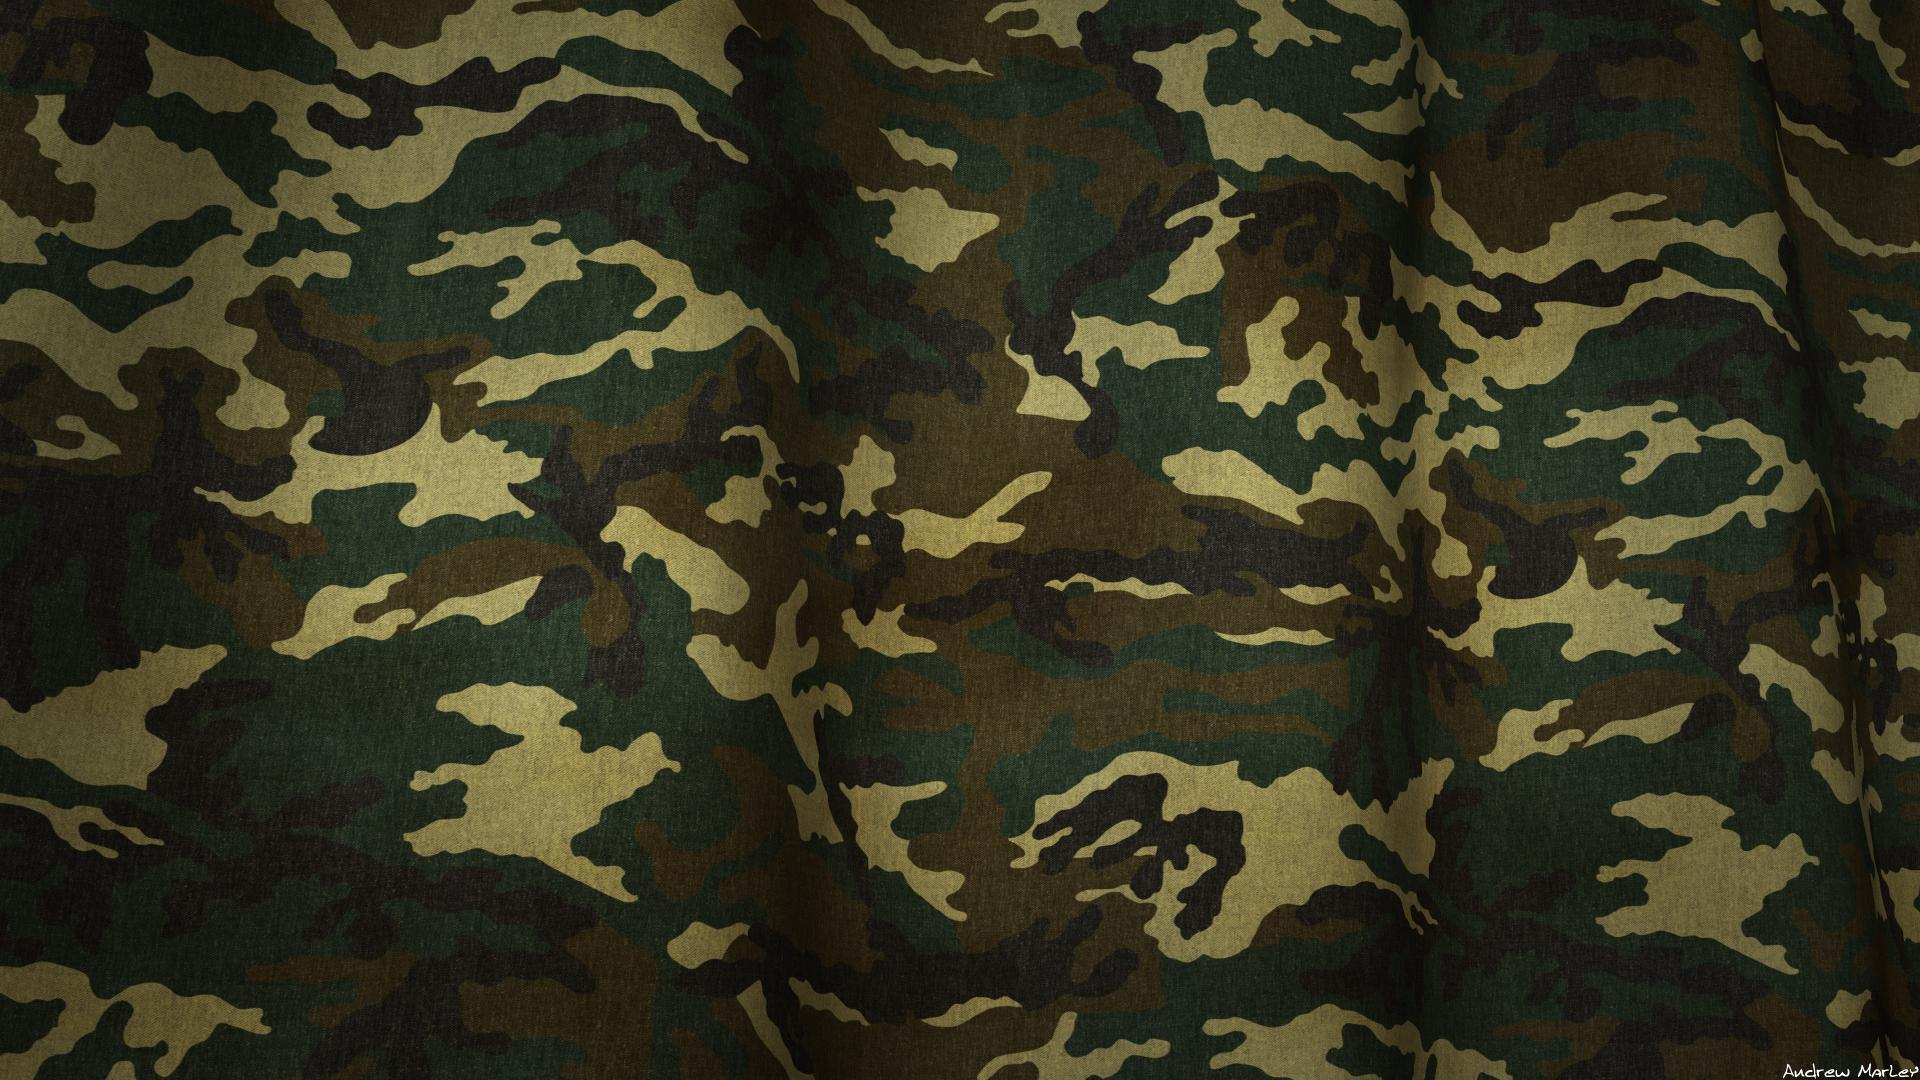 Camouflage Wallpaper  Android Apps on Google Play 1920x1080